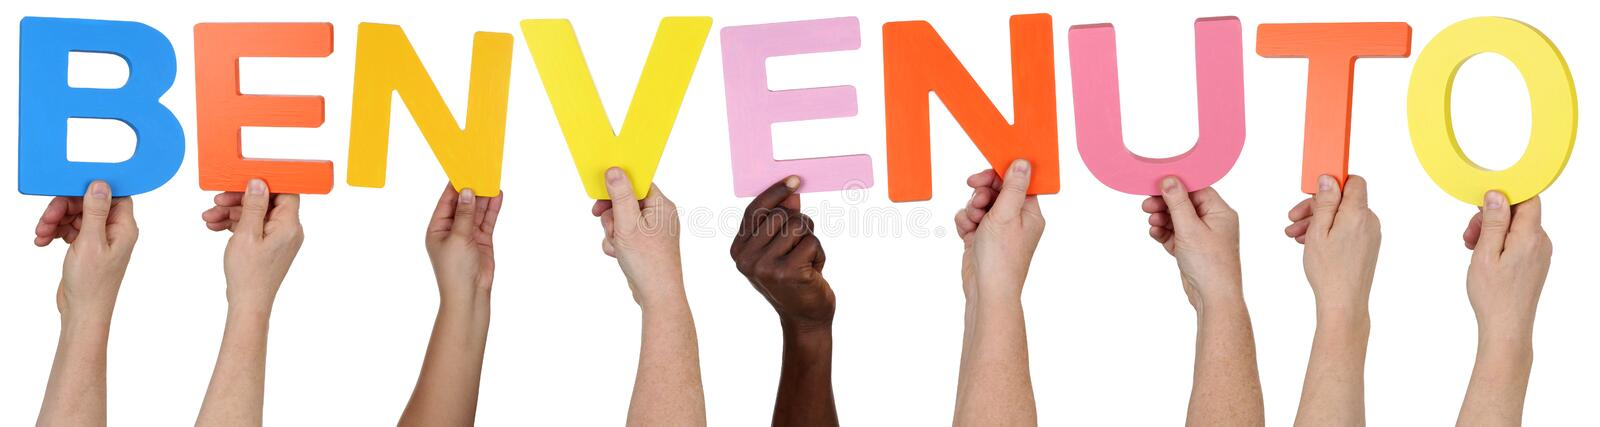 Multi ethnic group of people holding the Italian word Benvenuto stock images